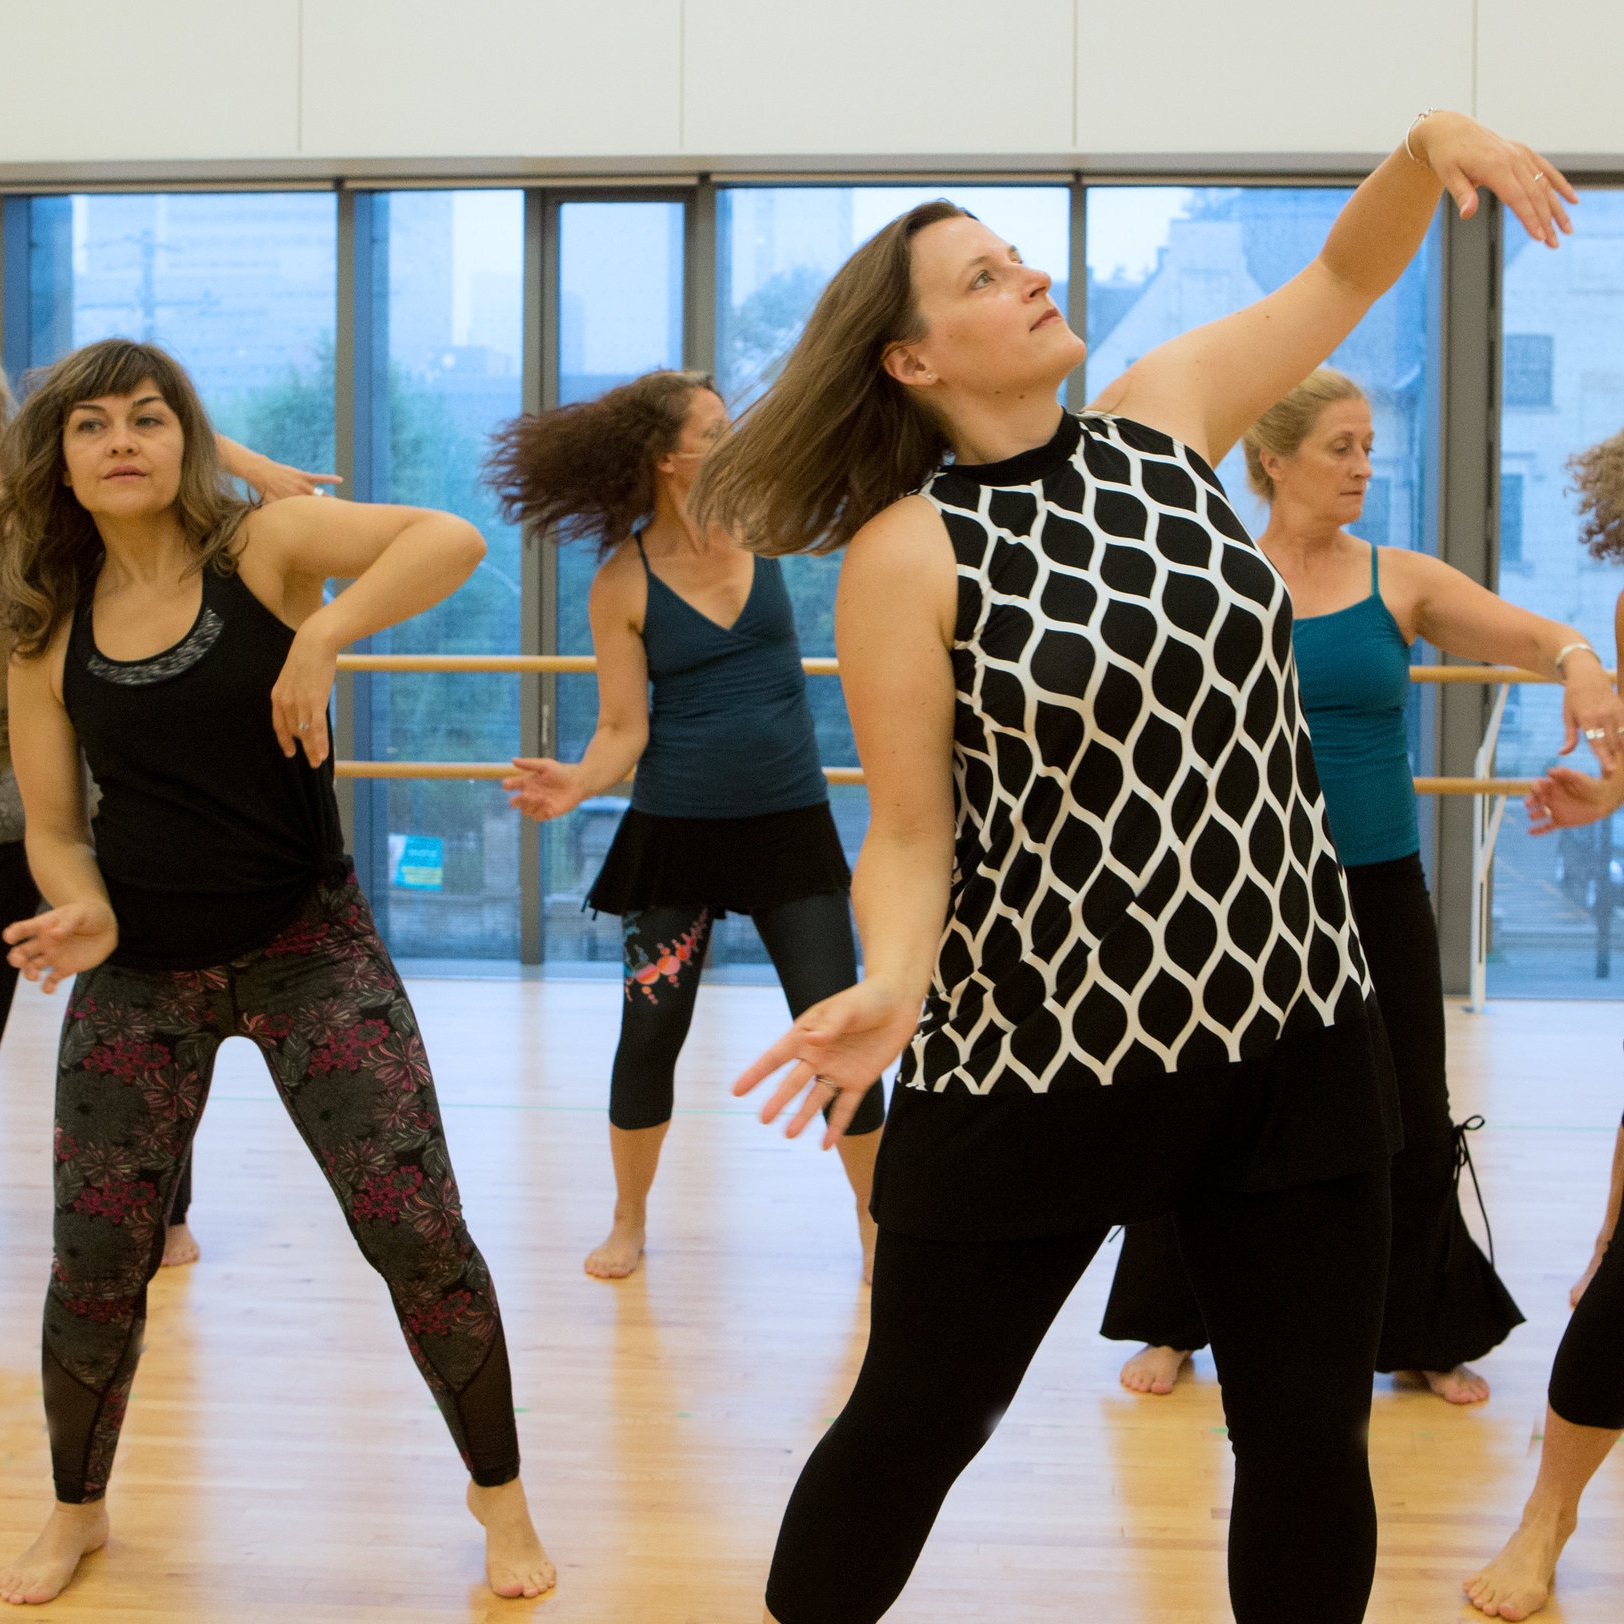 nia-dance-cardio-toronto-fitness-adults-inclusive